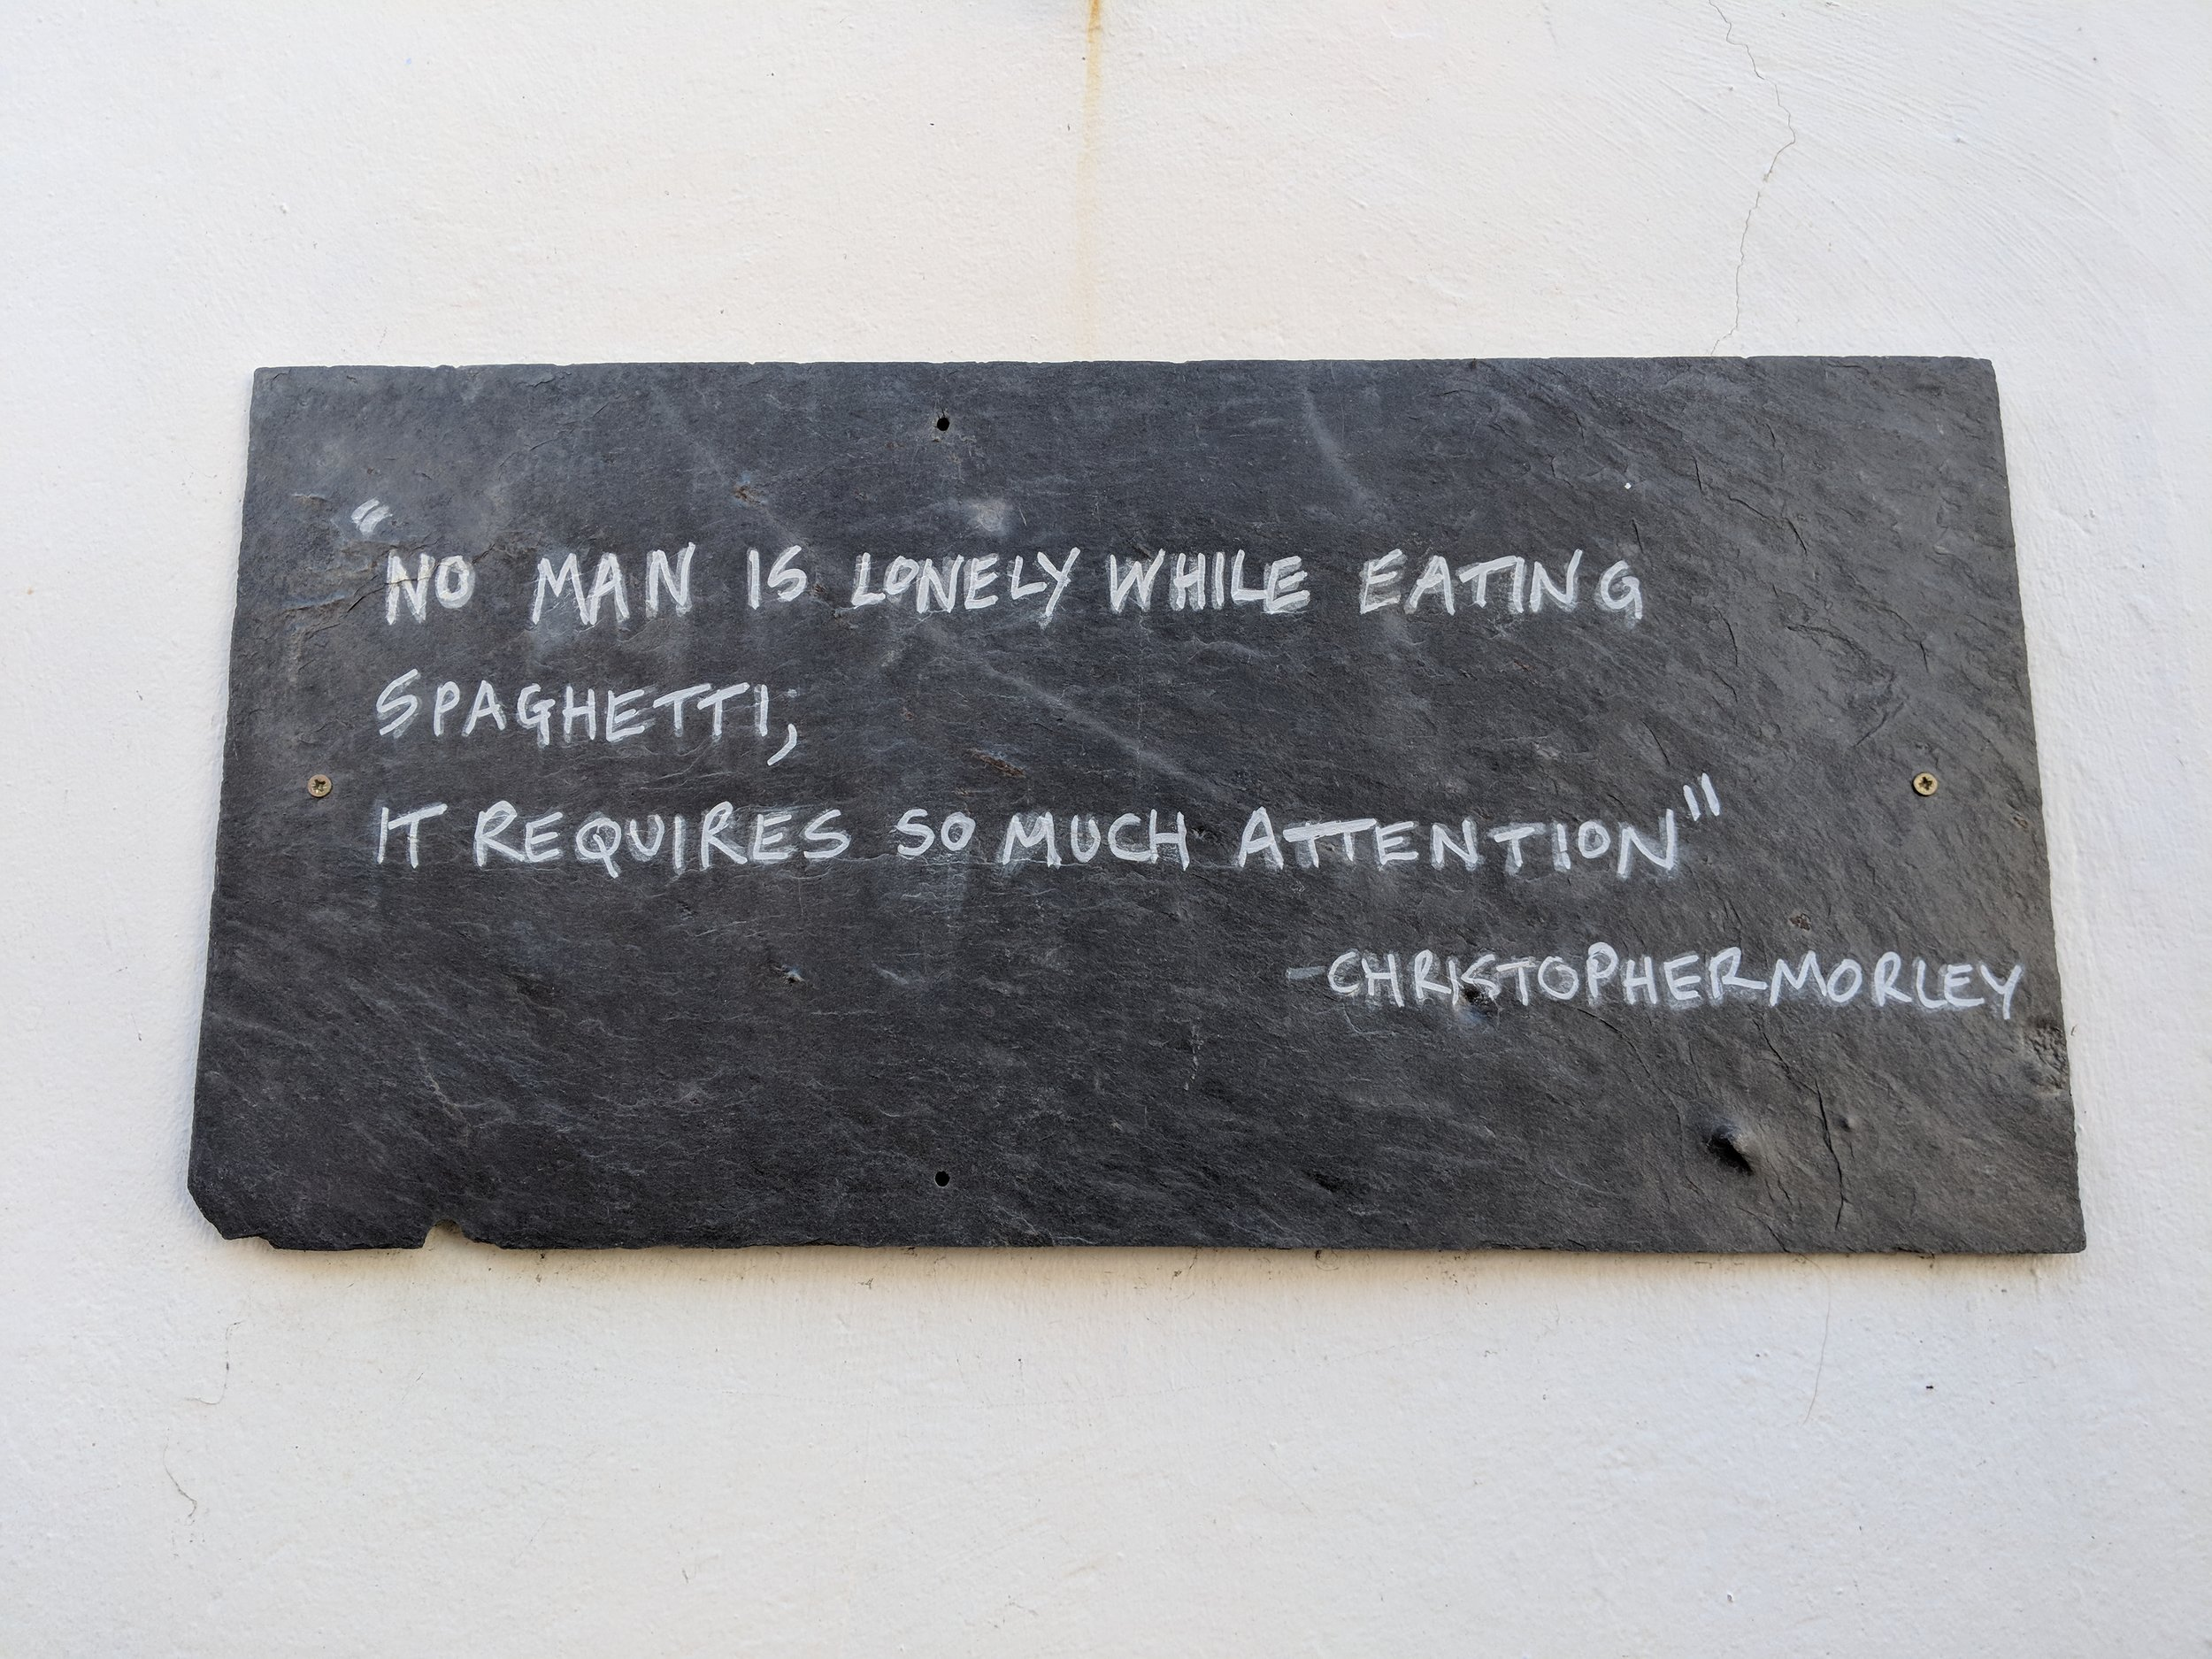 Quotes of Kinsale - There seemed to be an abundance of these little quote strewn through-out the town.